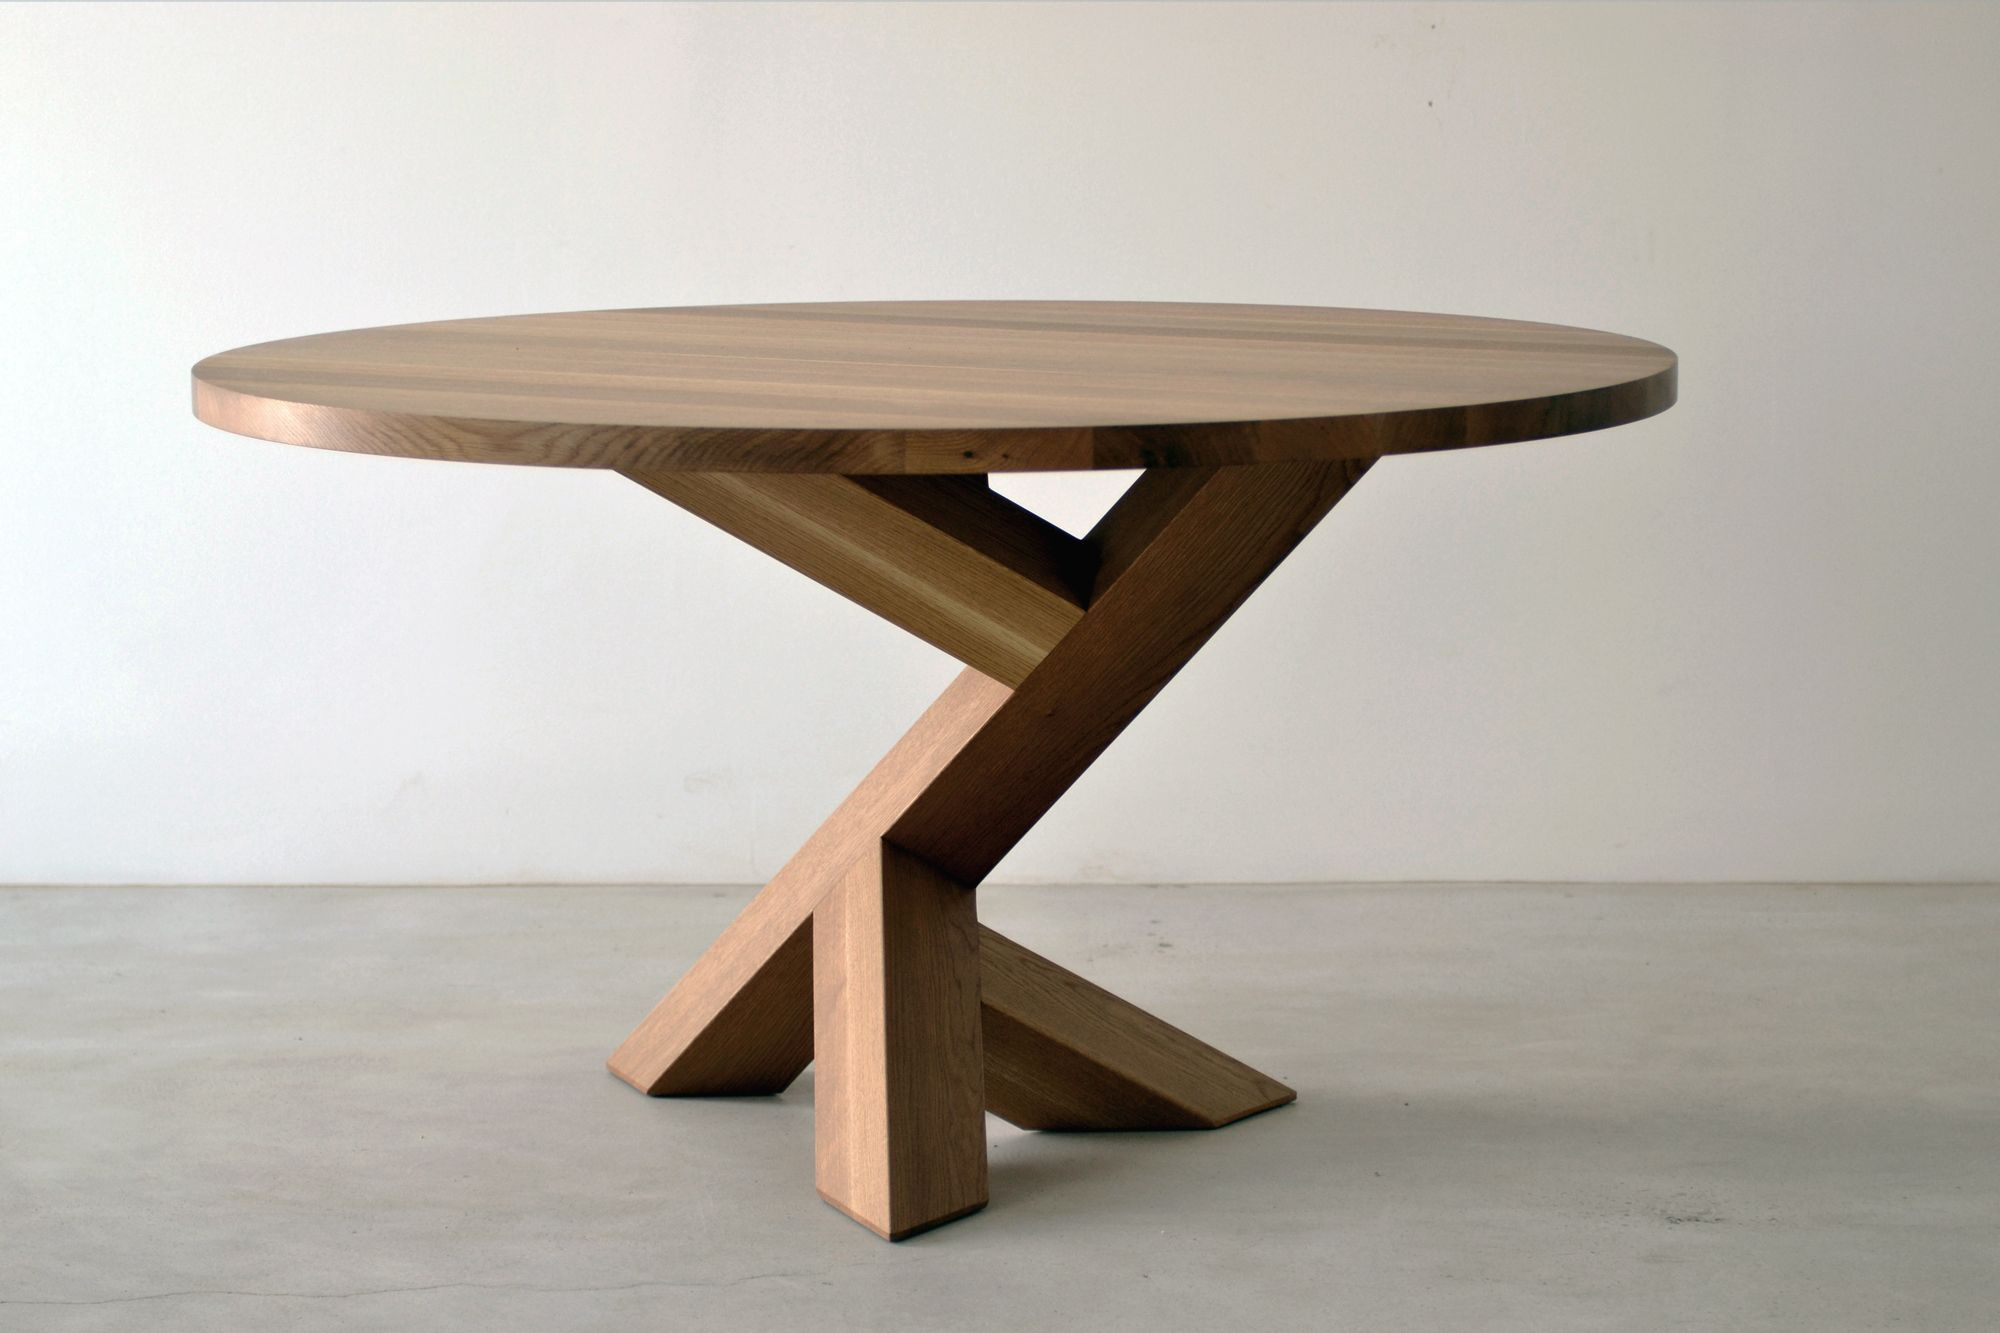 Izm Well Considered Design Made In Canada Wood Table Legs Wood Table Design Modern Dining Table [ 1333 x 2000 Pixel ]